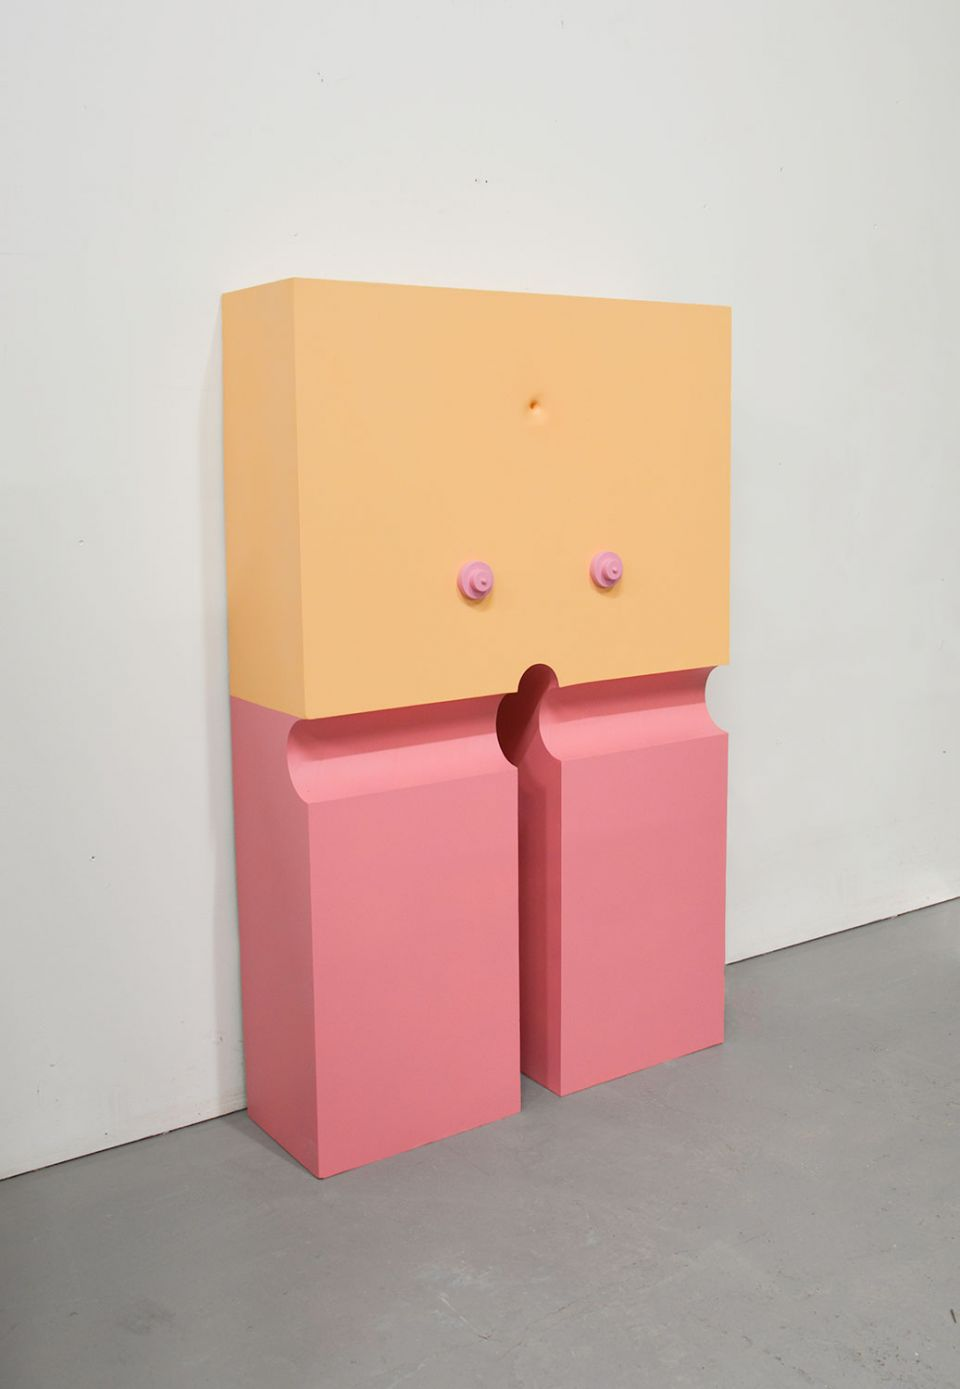 Liam Fallon, Handstand (English Rose), 2020, jesmonite, polyurethane foam, MDF, paint